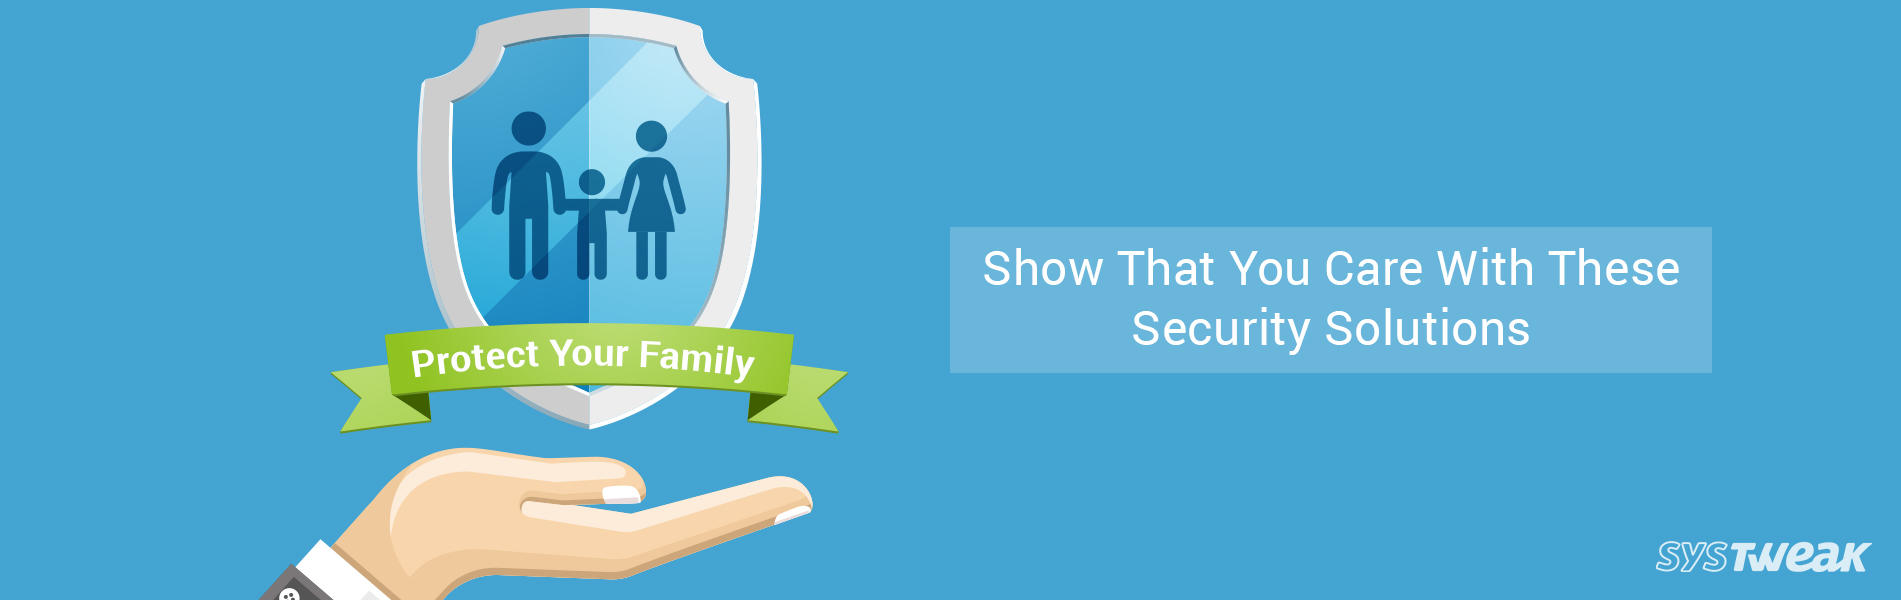 Protect Your Loved Ones With These Security Solutions